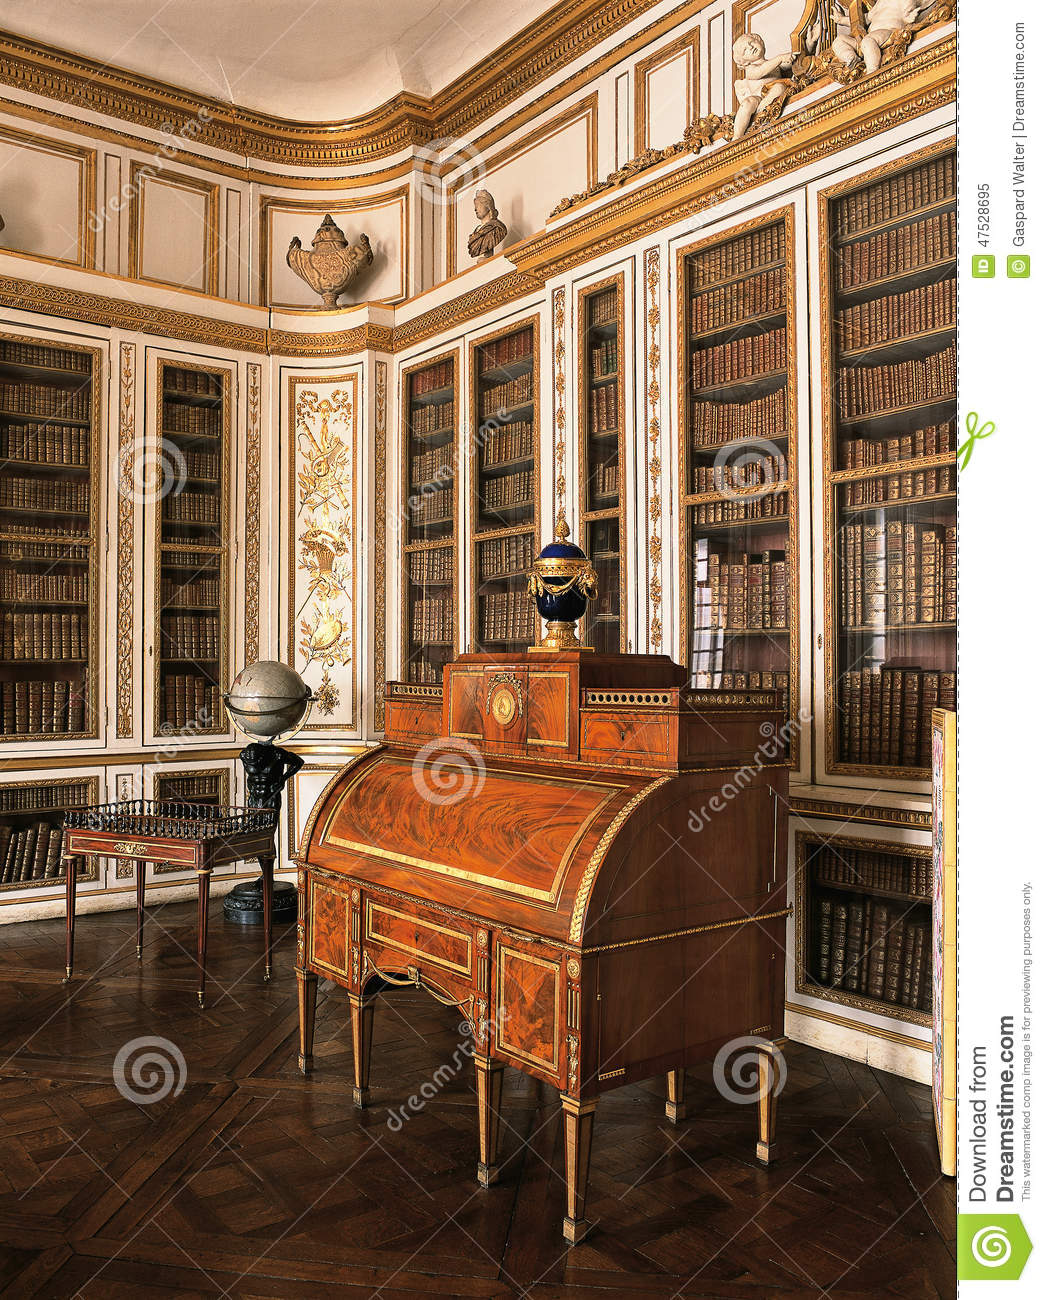 Muebles Versalles Wooden Room With Furniture At Versailles Palace Editorial